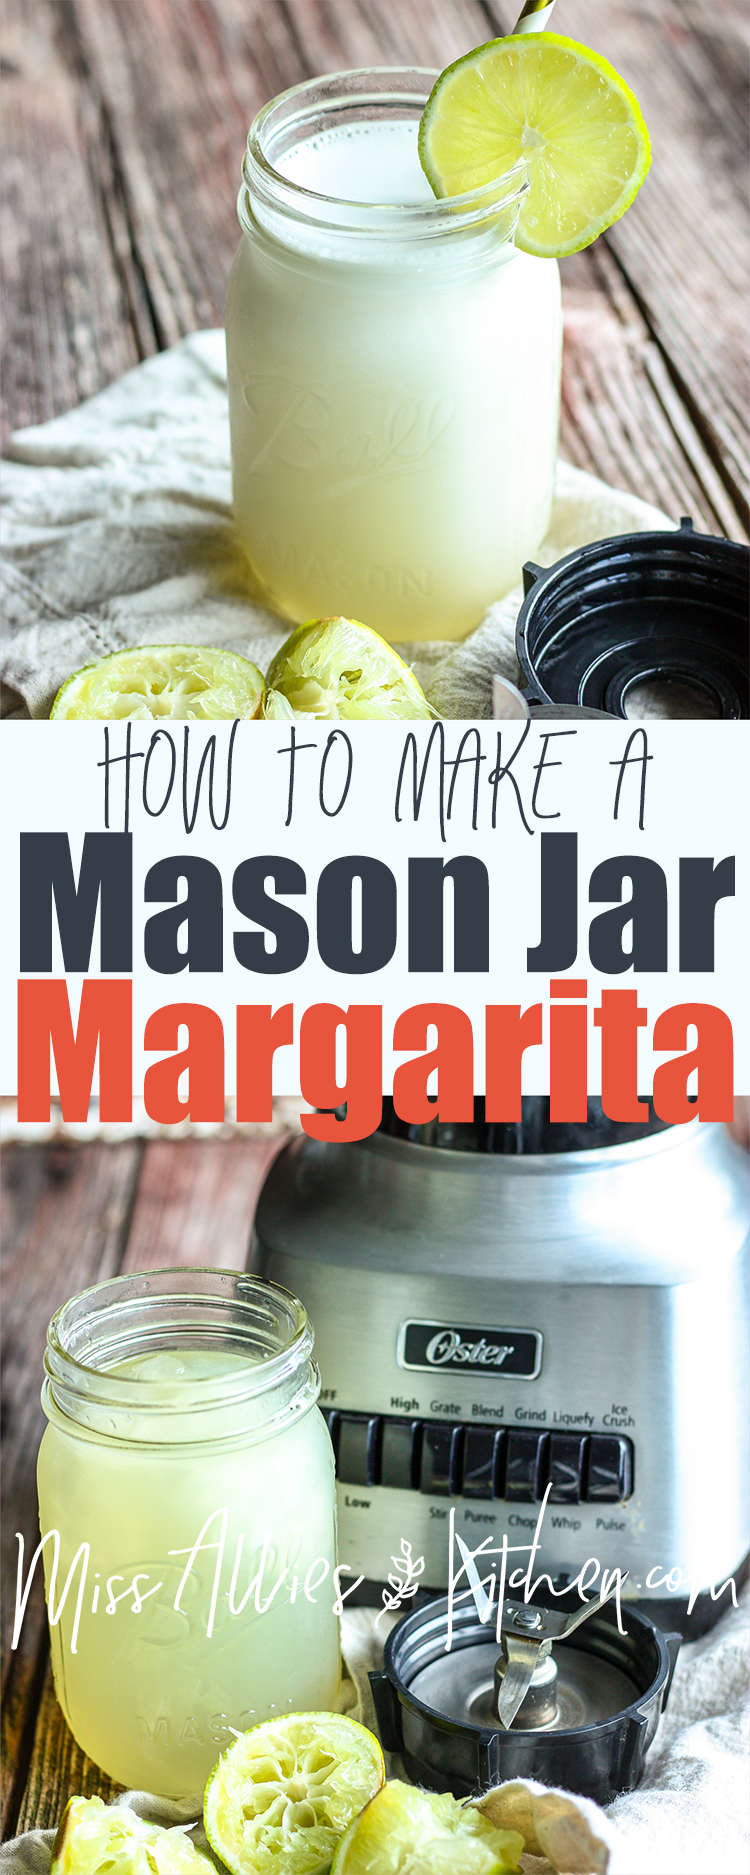 How To Make A Margarita in a Mason Jar!